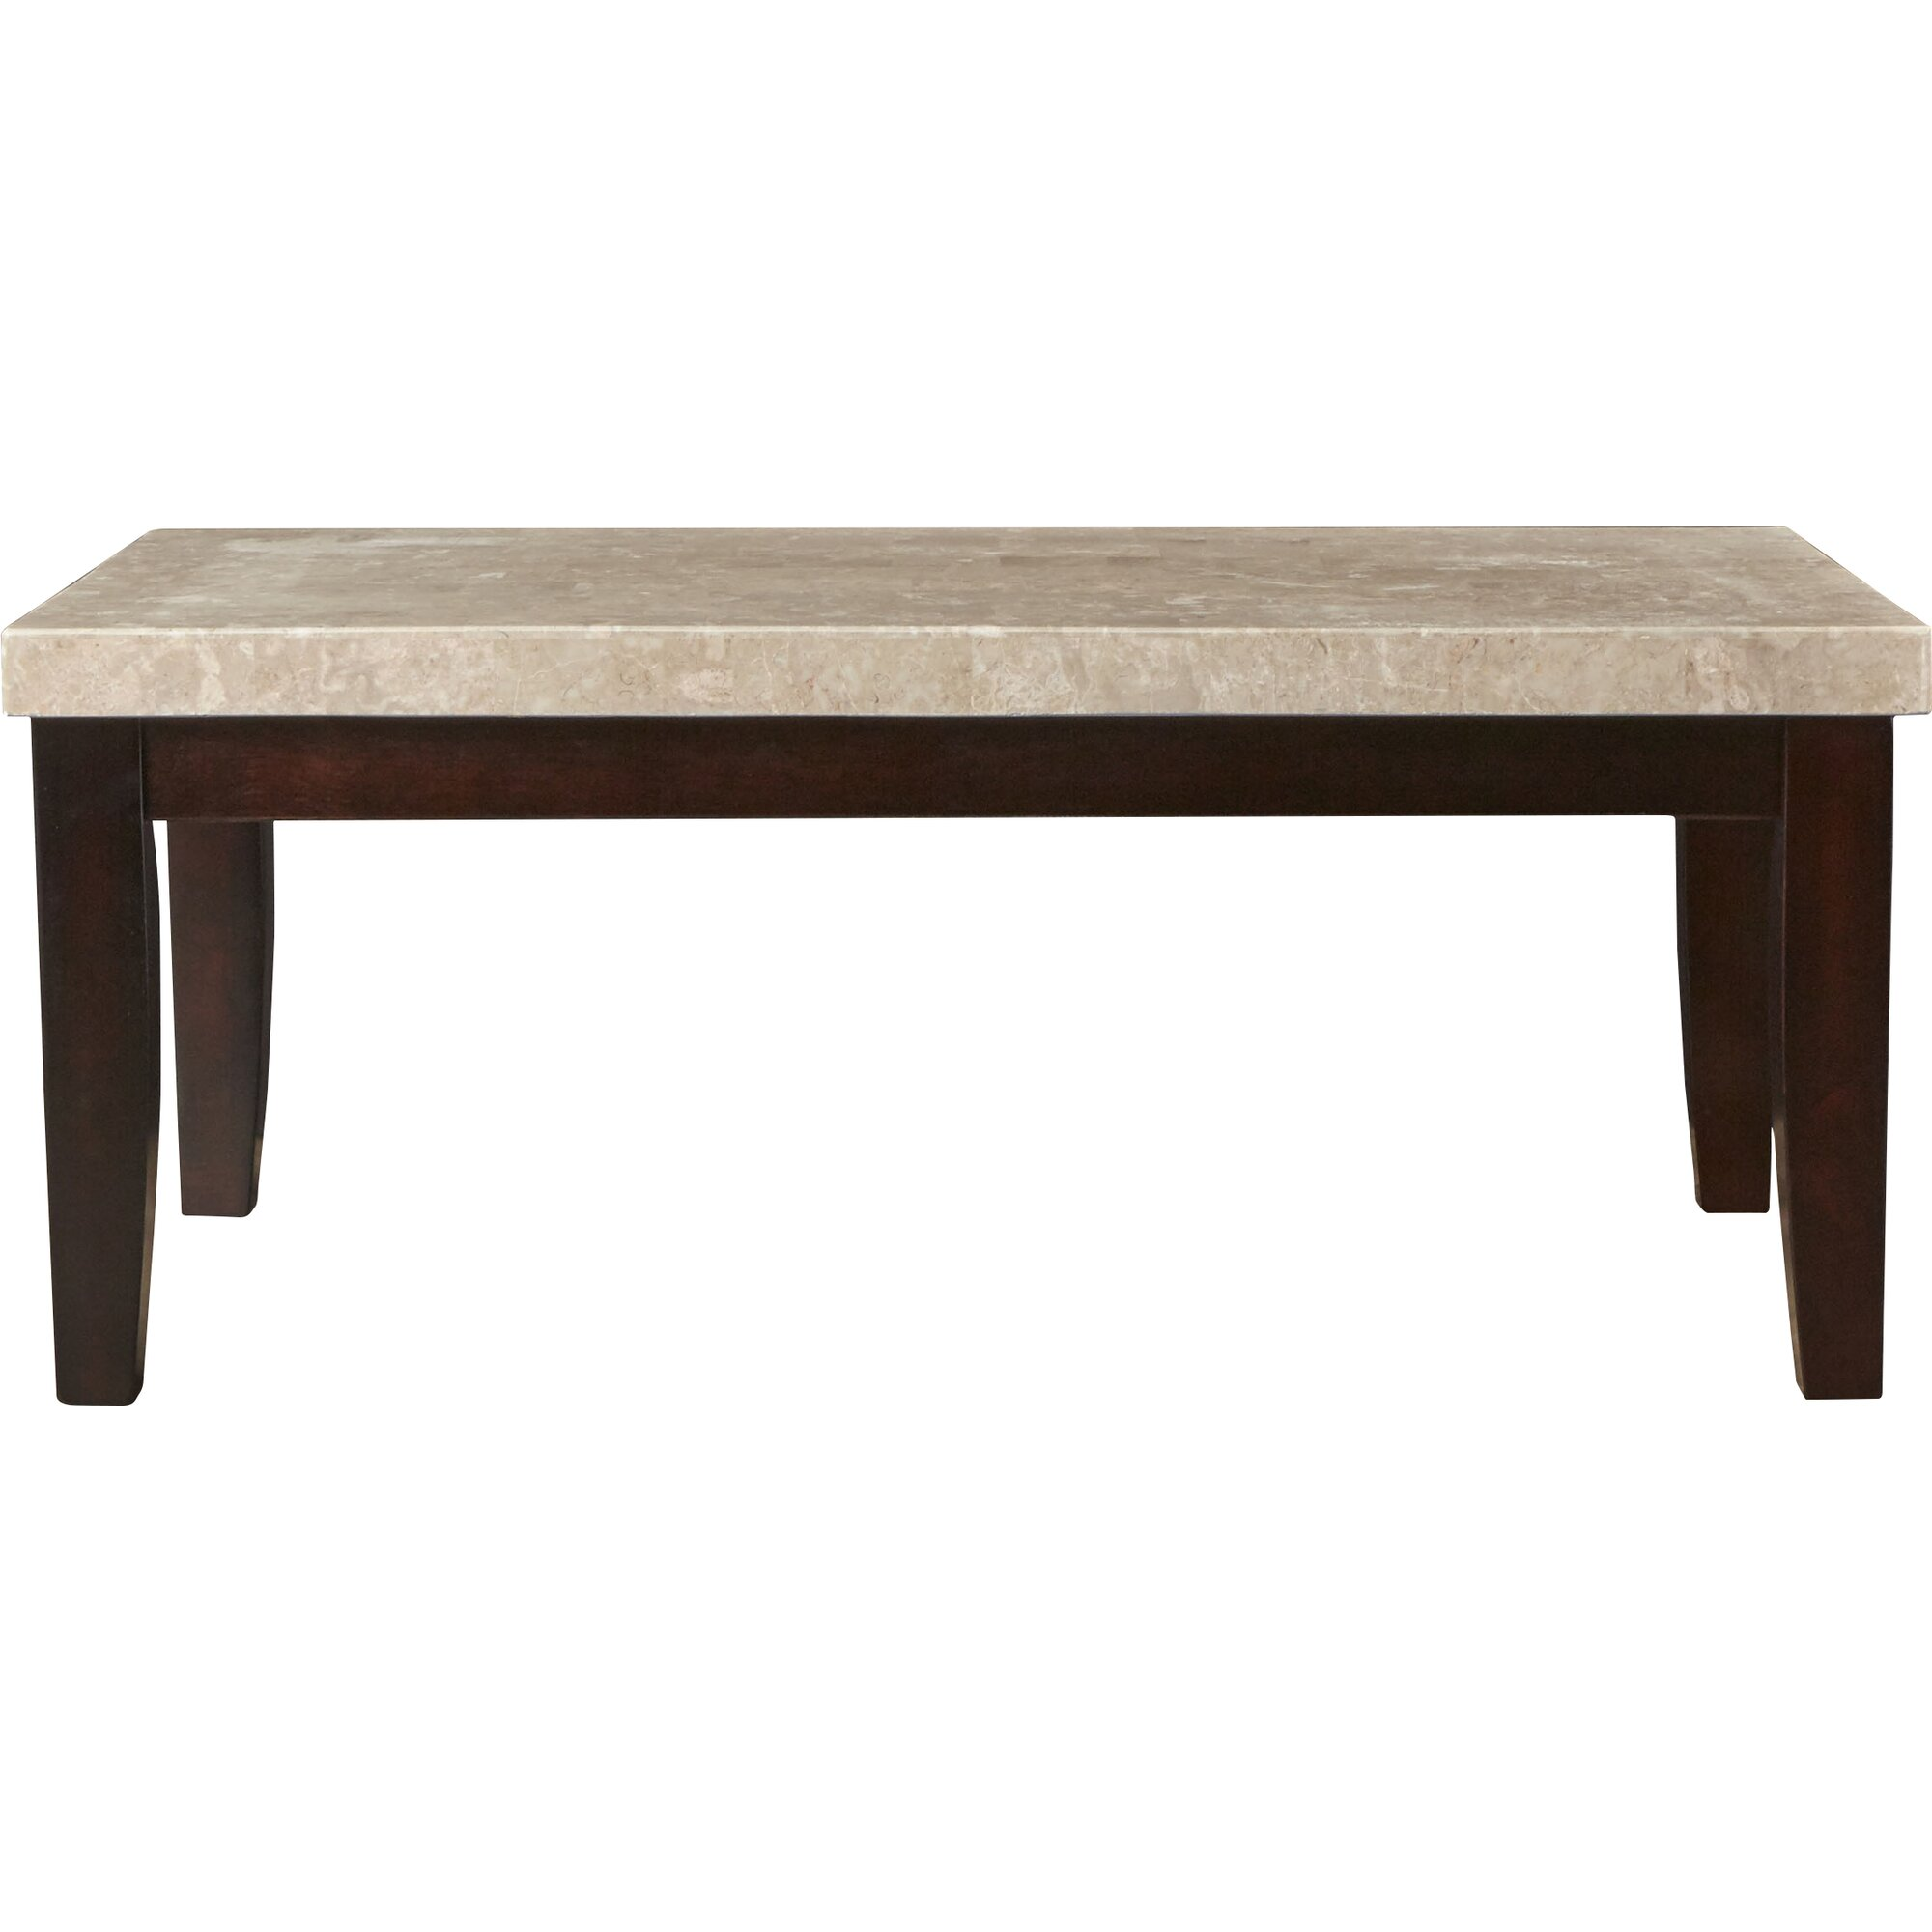 Latitude Run Chloe Coffee Table Reviews